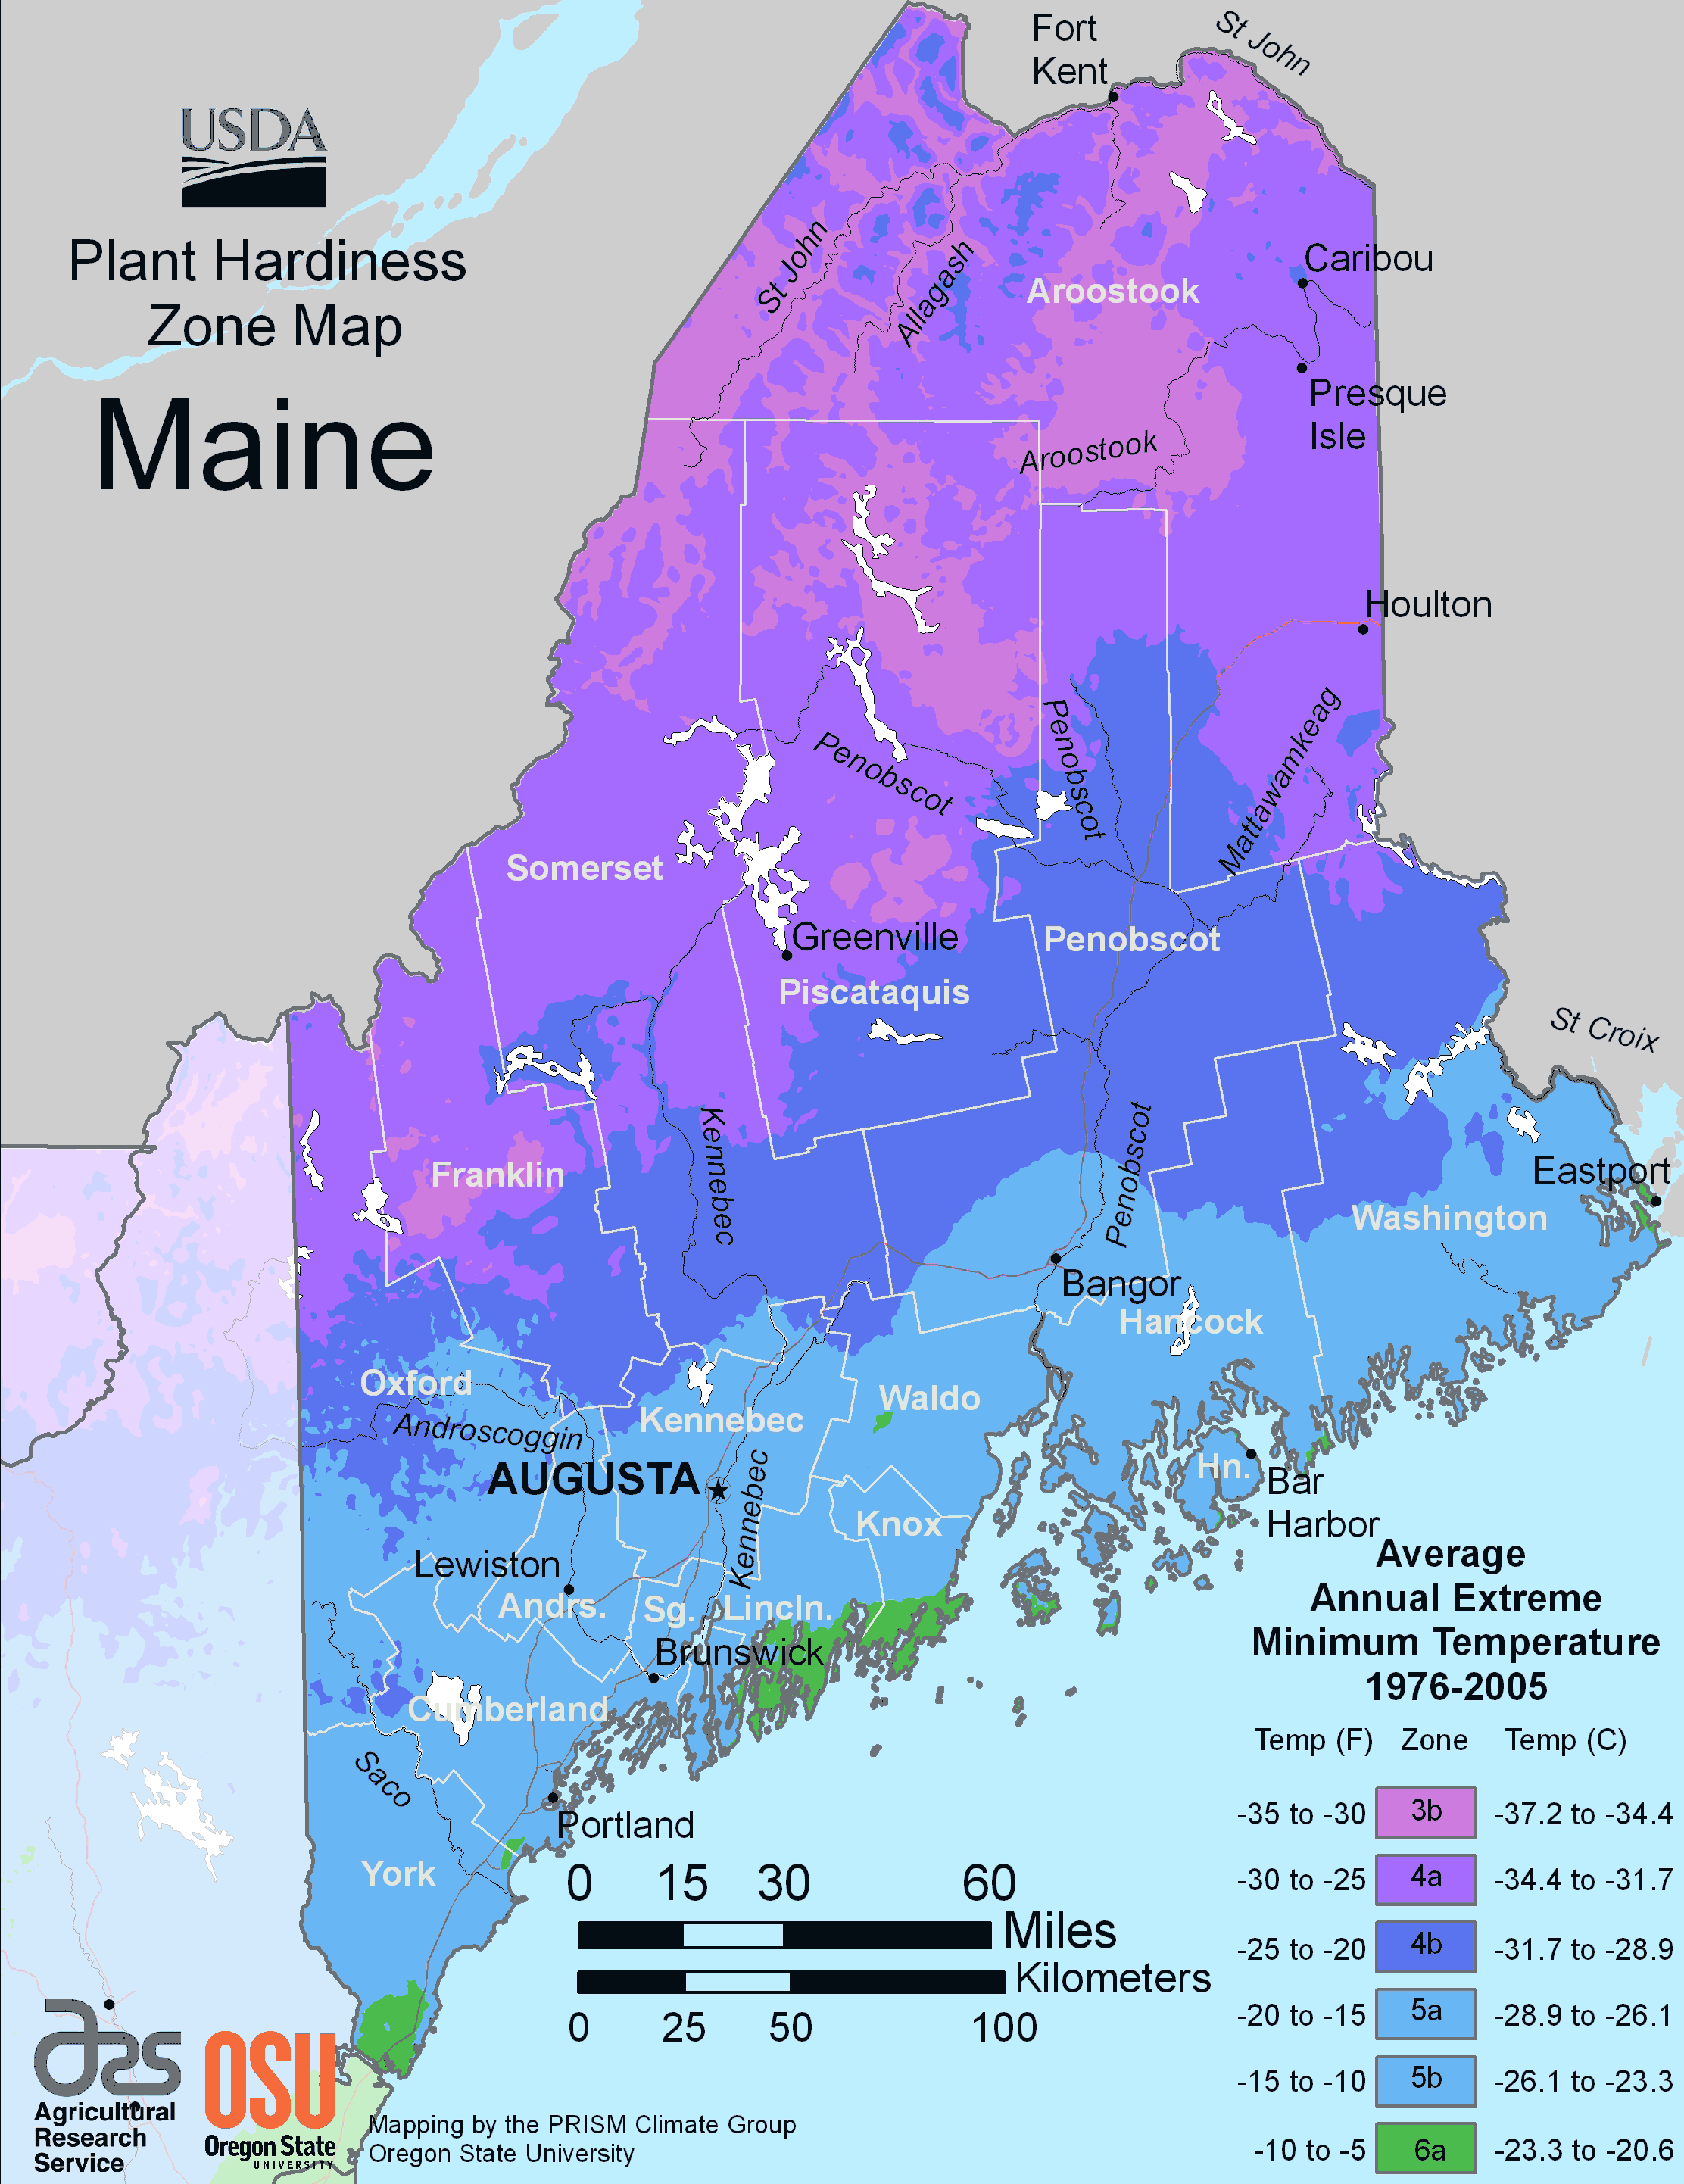 Population Map Of Maine Maine Plant Hardiness Zone Map • Mapsof.net